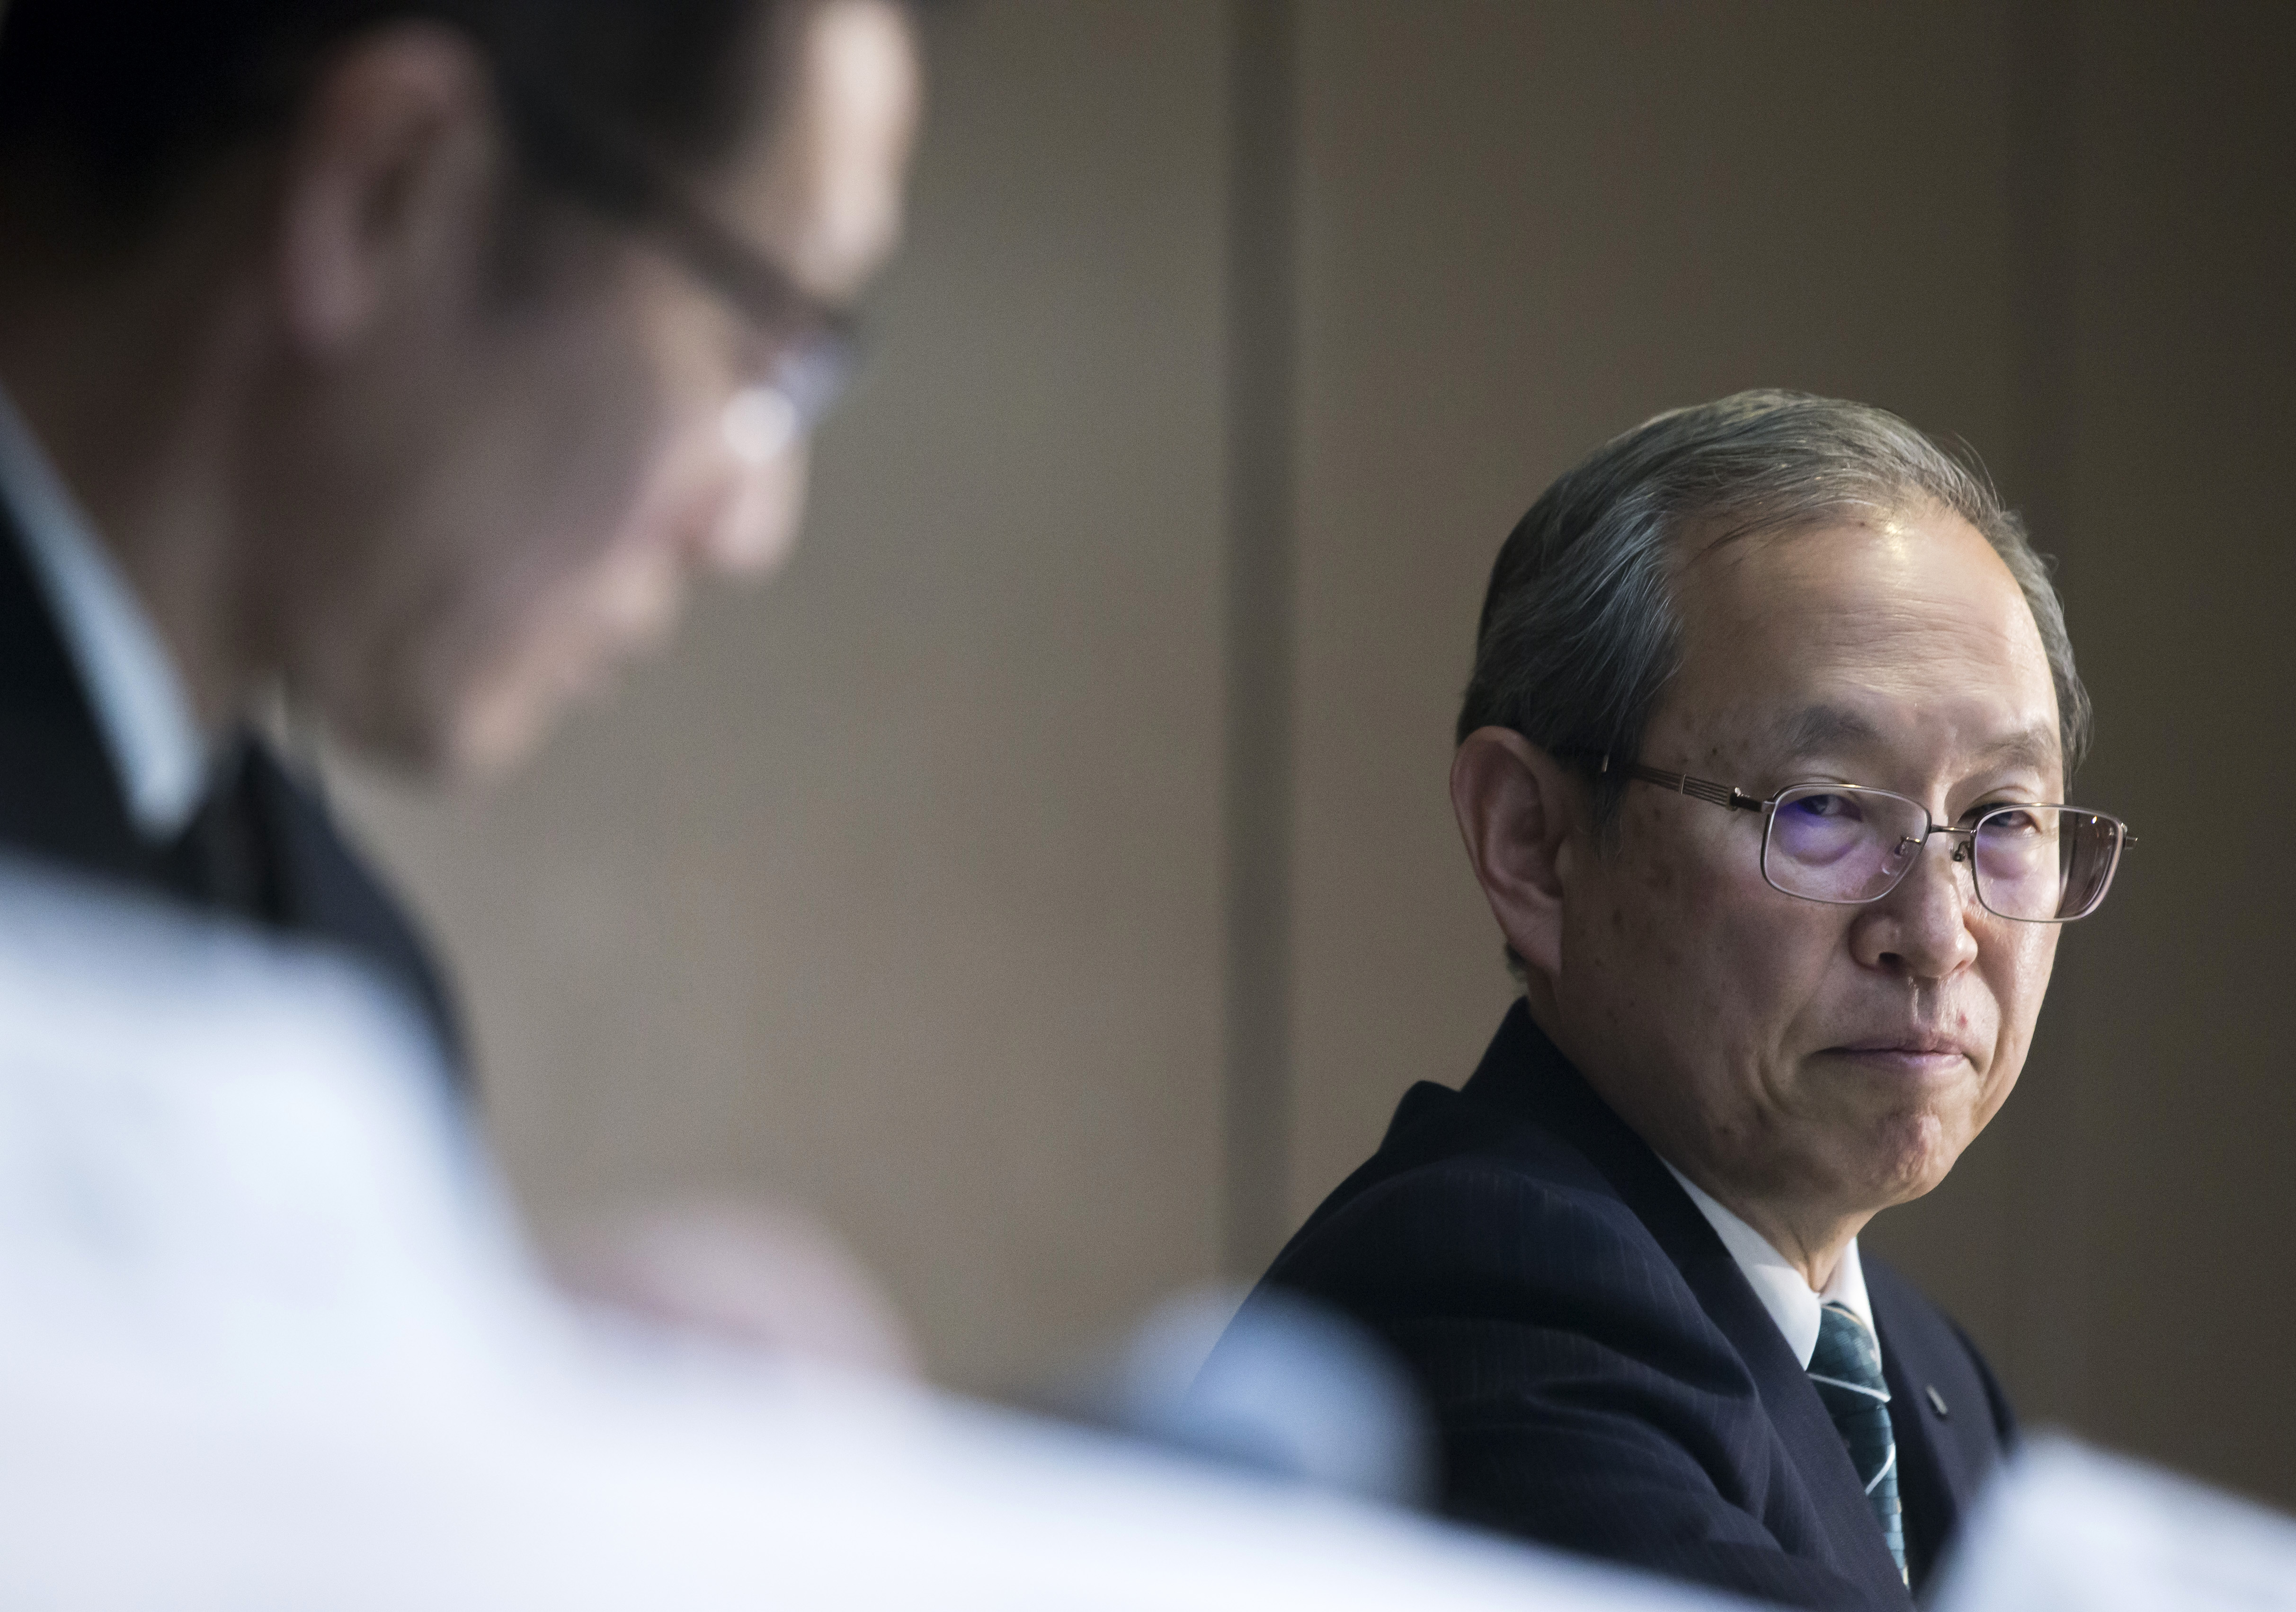 Toshiba Announces Its U.S. Nuclear Unit Files for Bankruptcy Protection